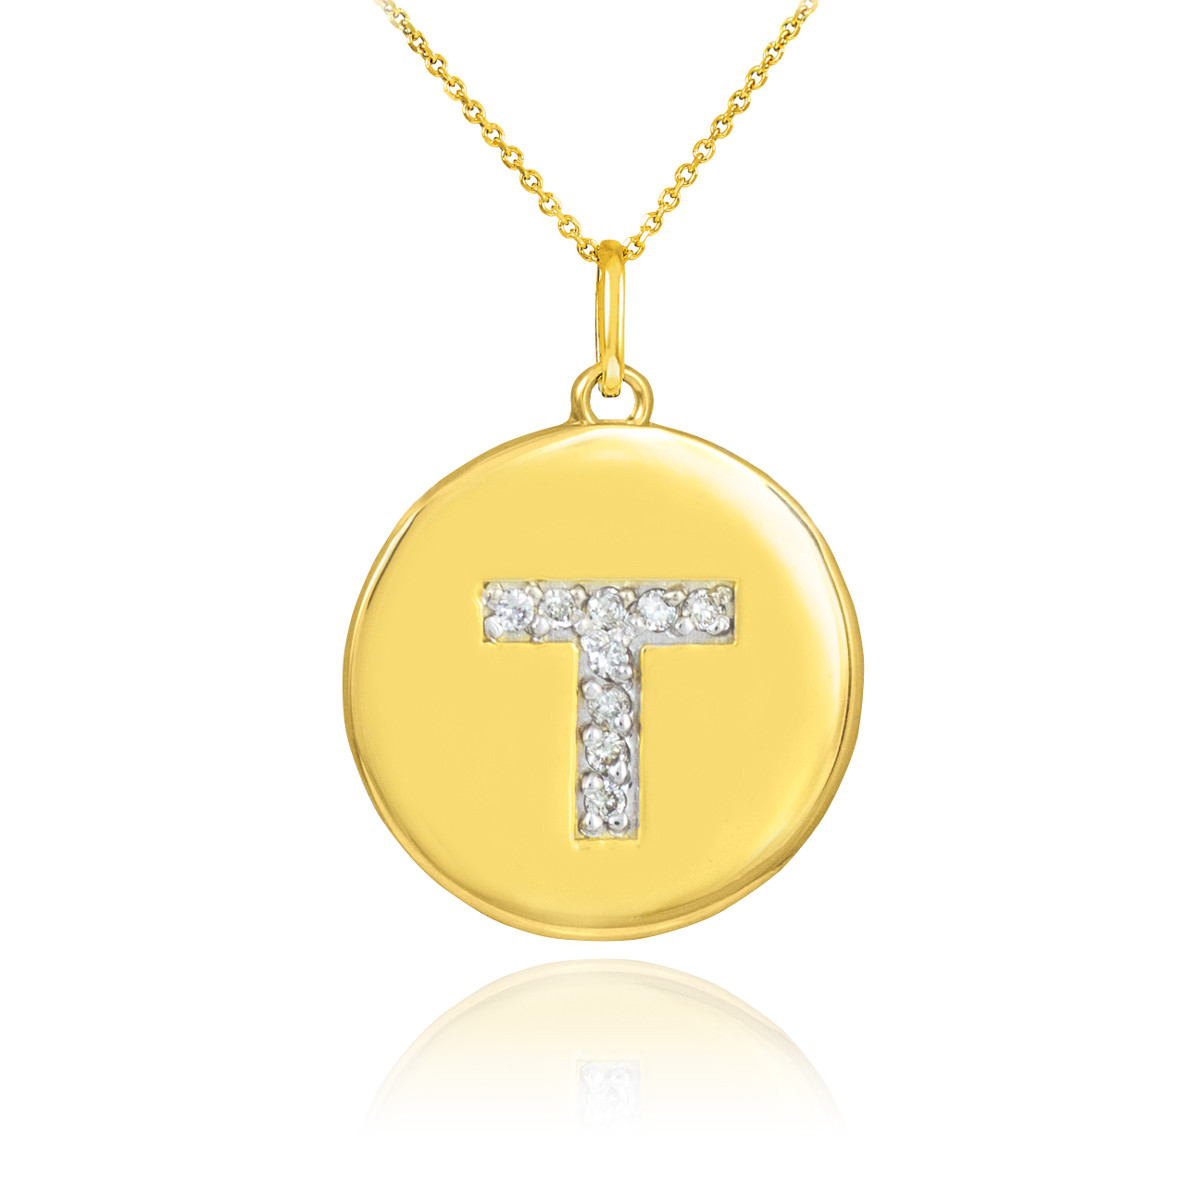 10K Yellow Gold Charm Pendant Themed Initial T